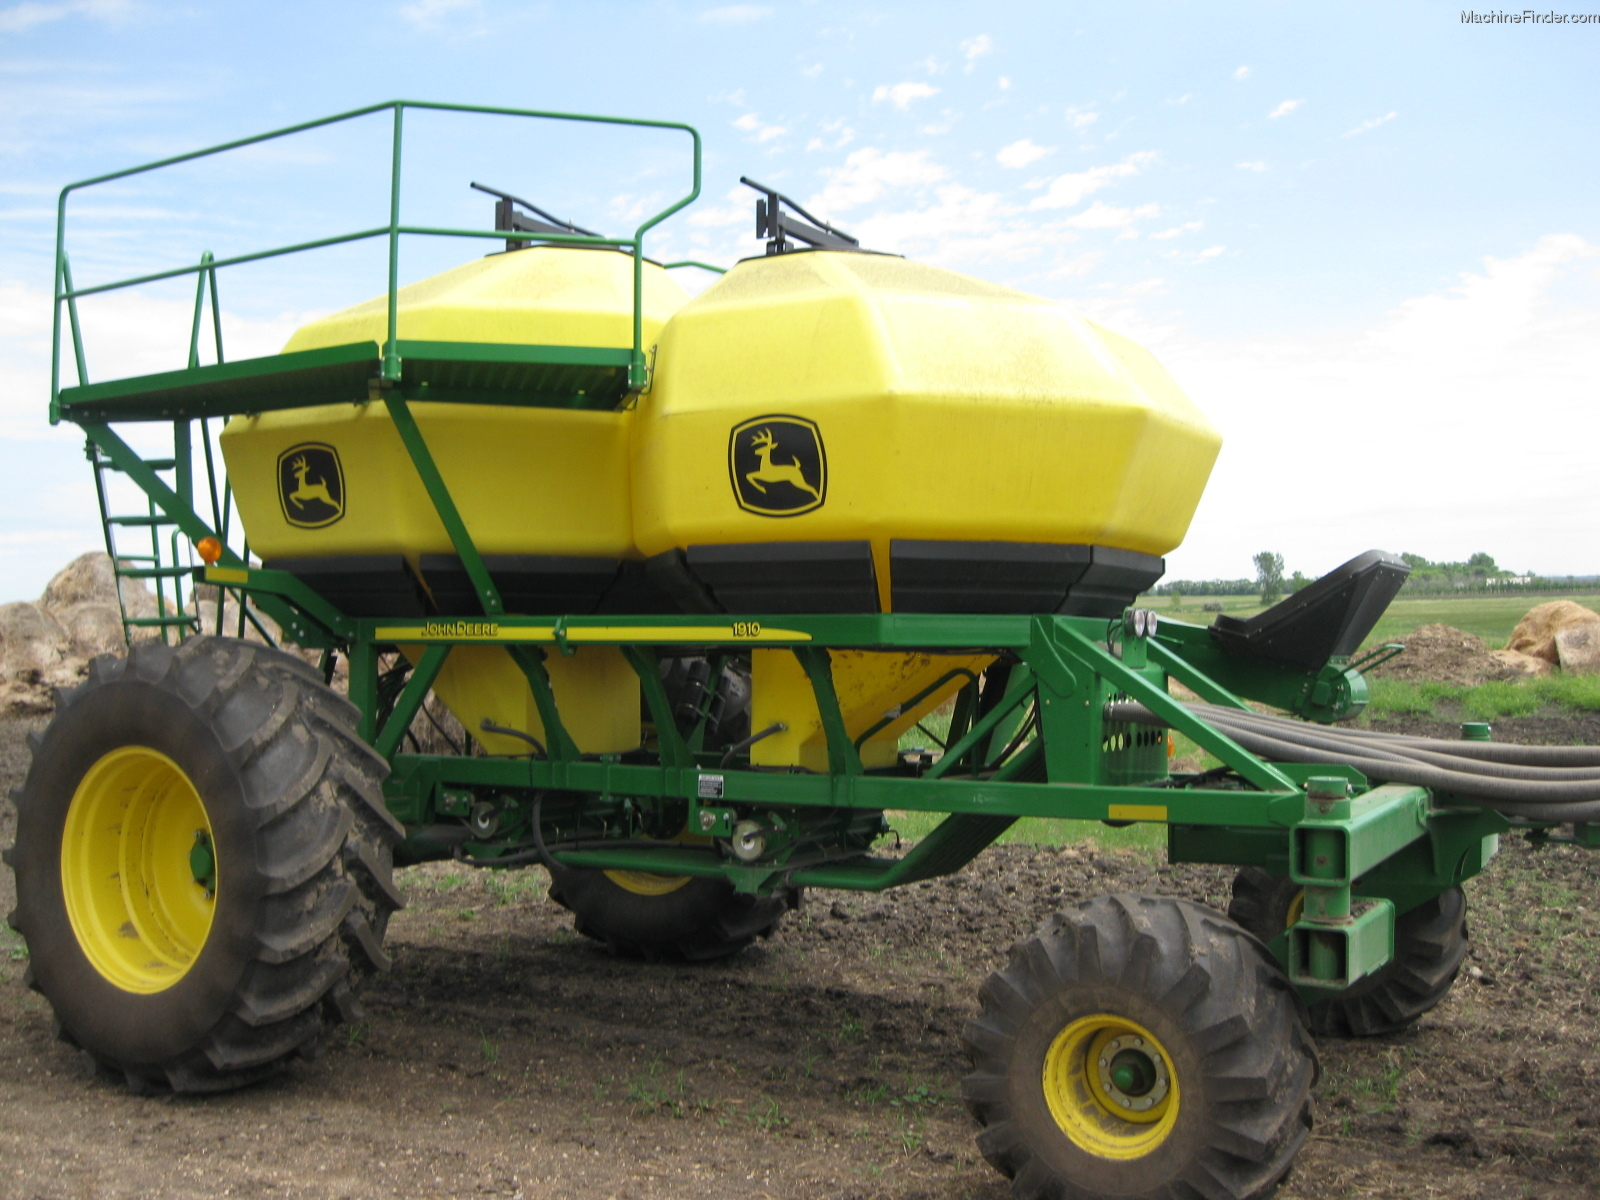 2012 John Deere 1890 Planting & Seeding - Air Drills ...